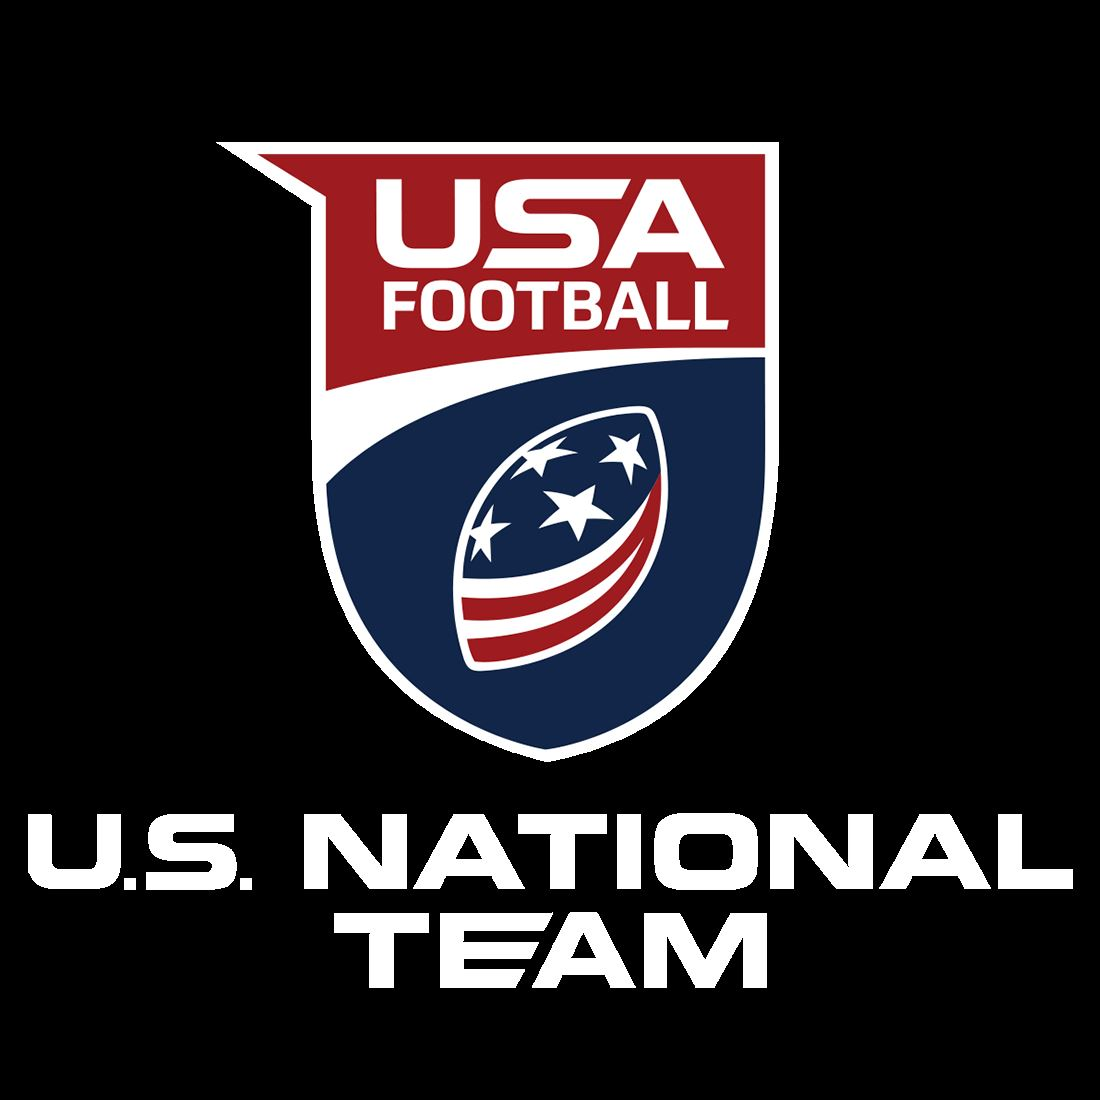 USA Football - Under-18 National Team